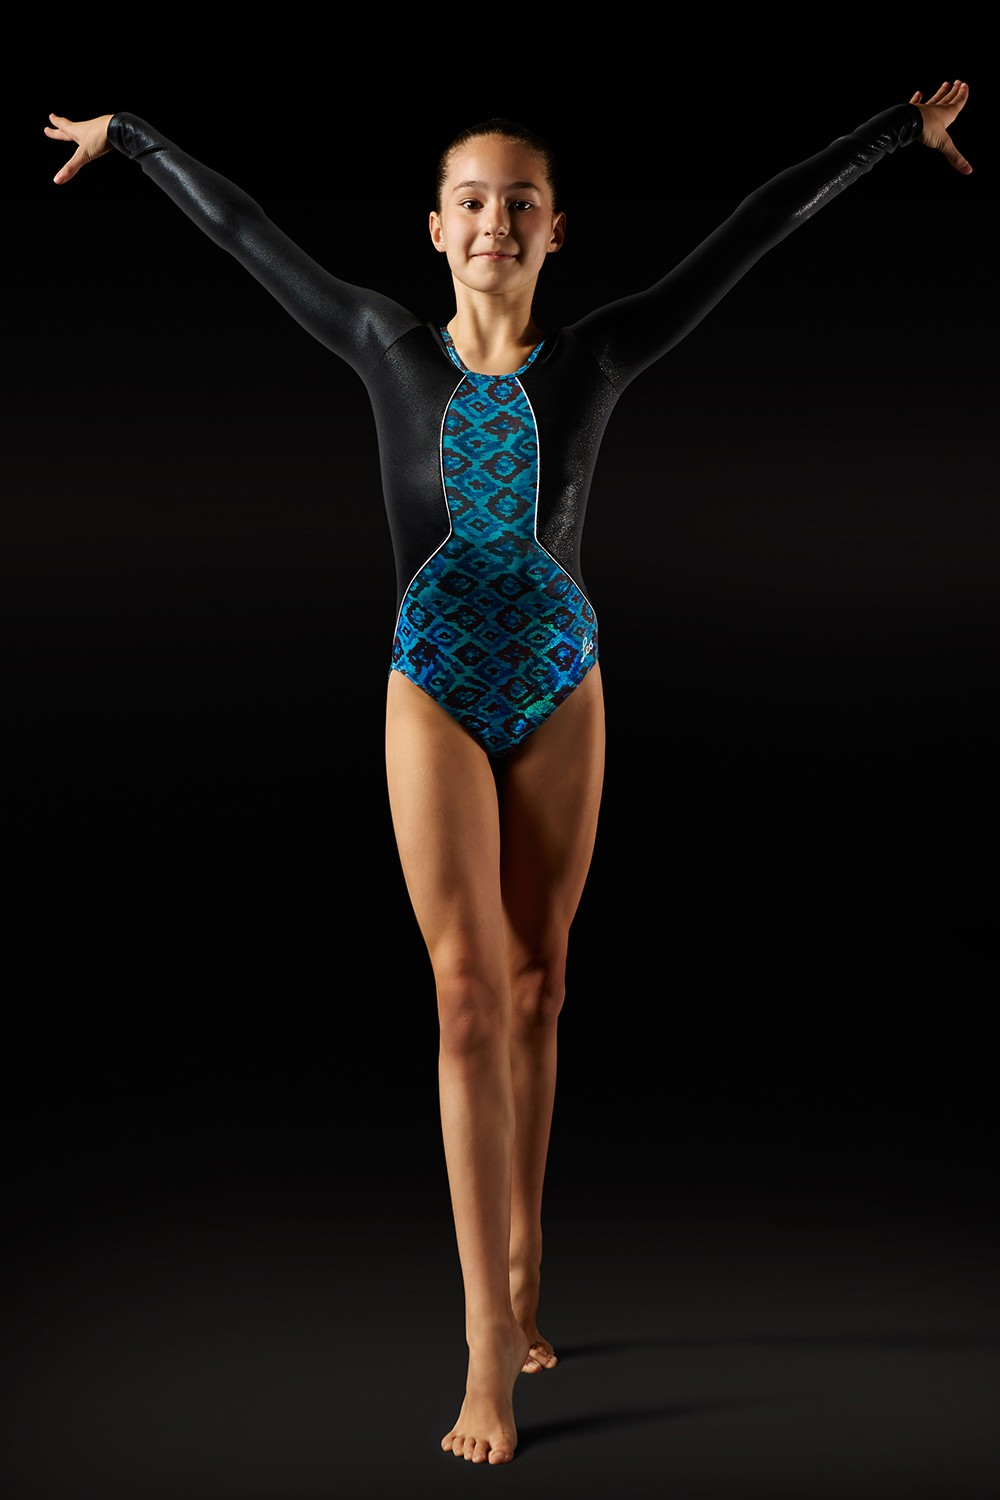 Aztec Long Sleeve Leotard Girl's Gymnastics Leotards